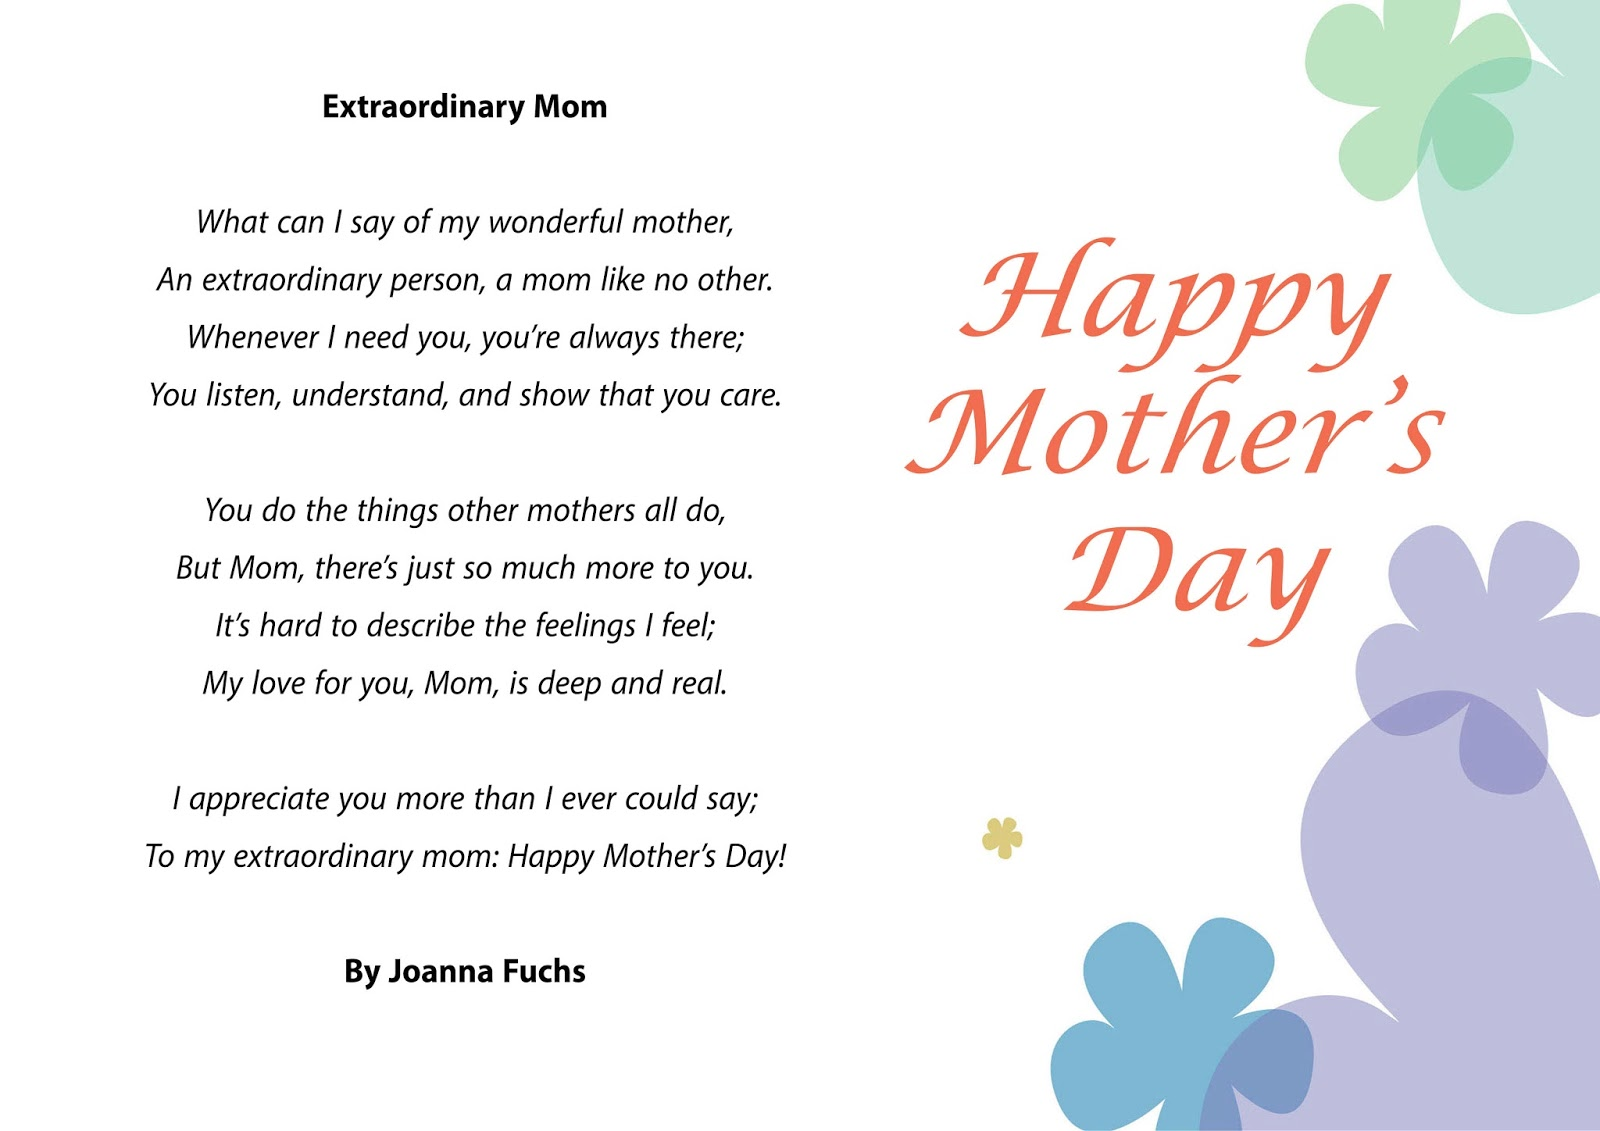 mothers day poems 2016 mothers day 2016